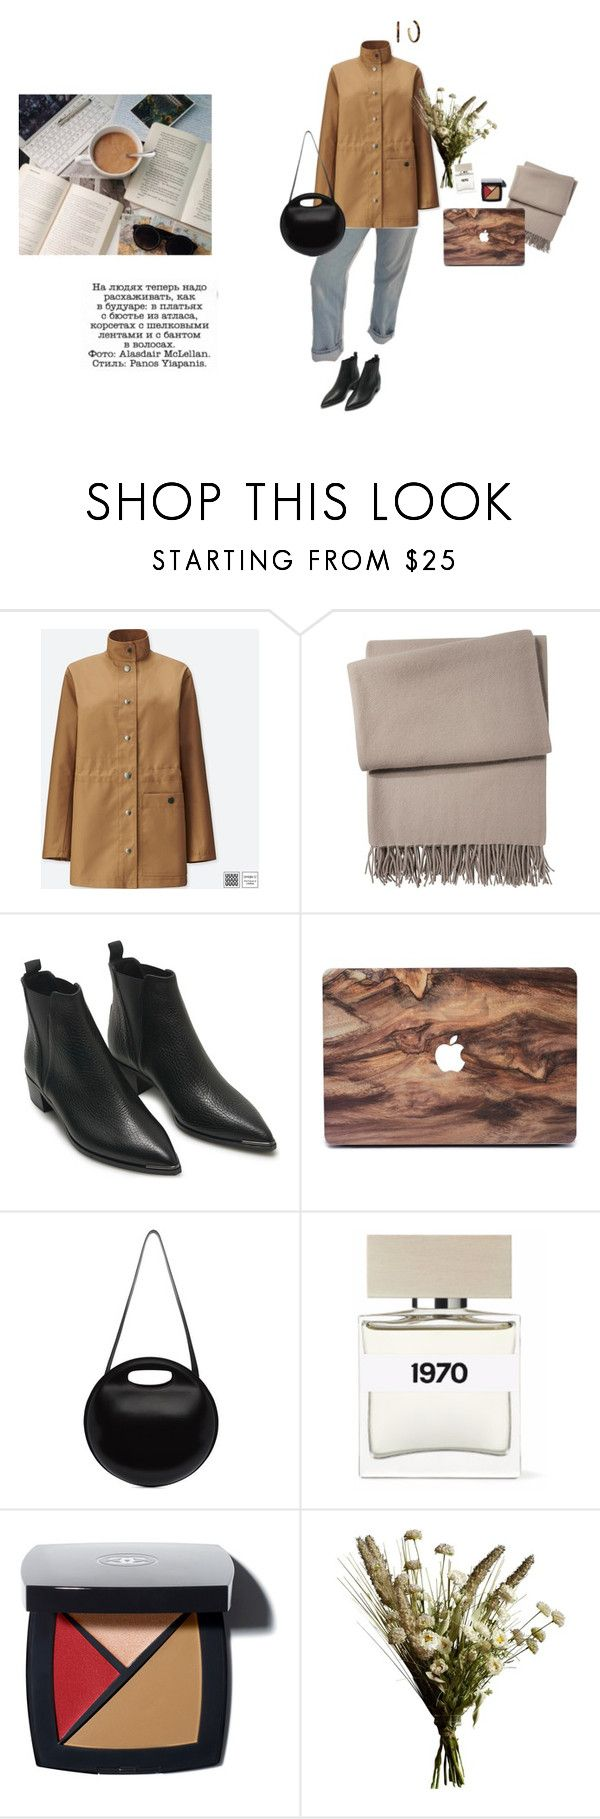 """""""Untitled #300"""" by palina-parker ❤ liked on Polyvore featuring Uniqlo, Yves Delorme, Acne Studios, Lemaire, Bella Freud, Abigail Ahern and Michael Kors"""